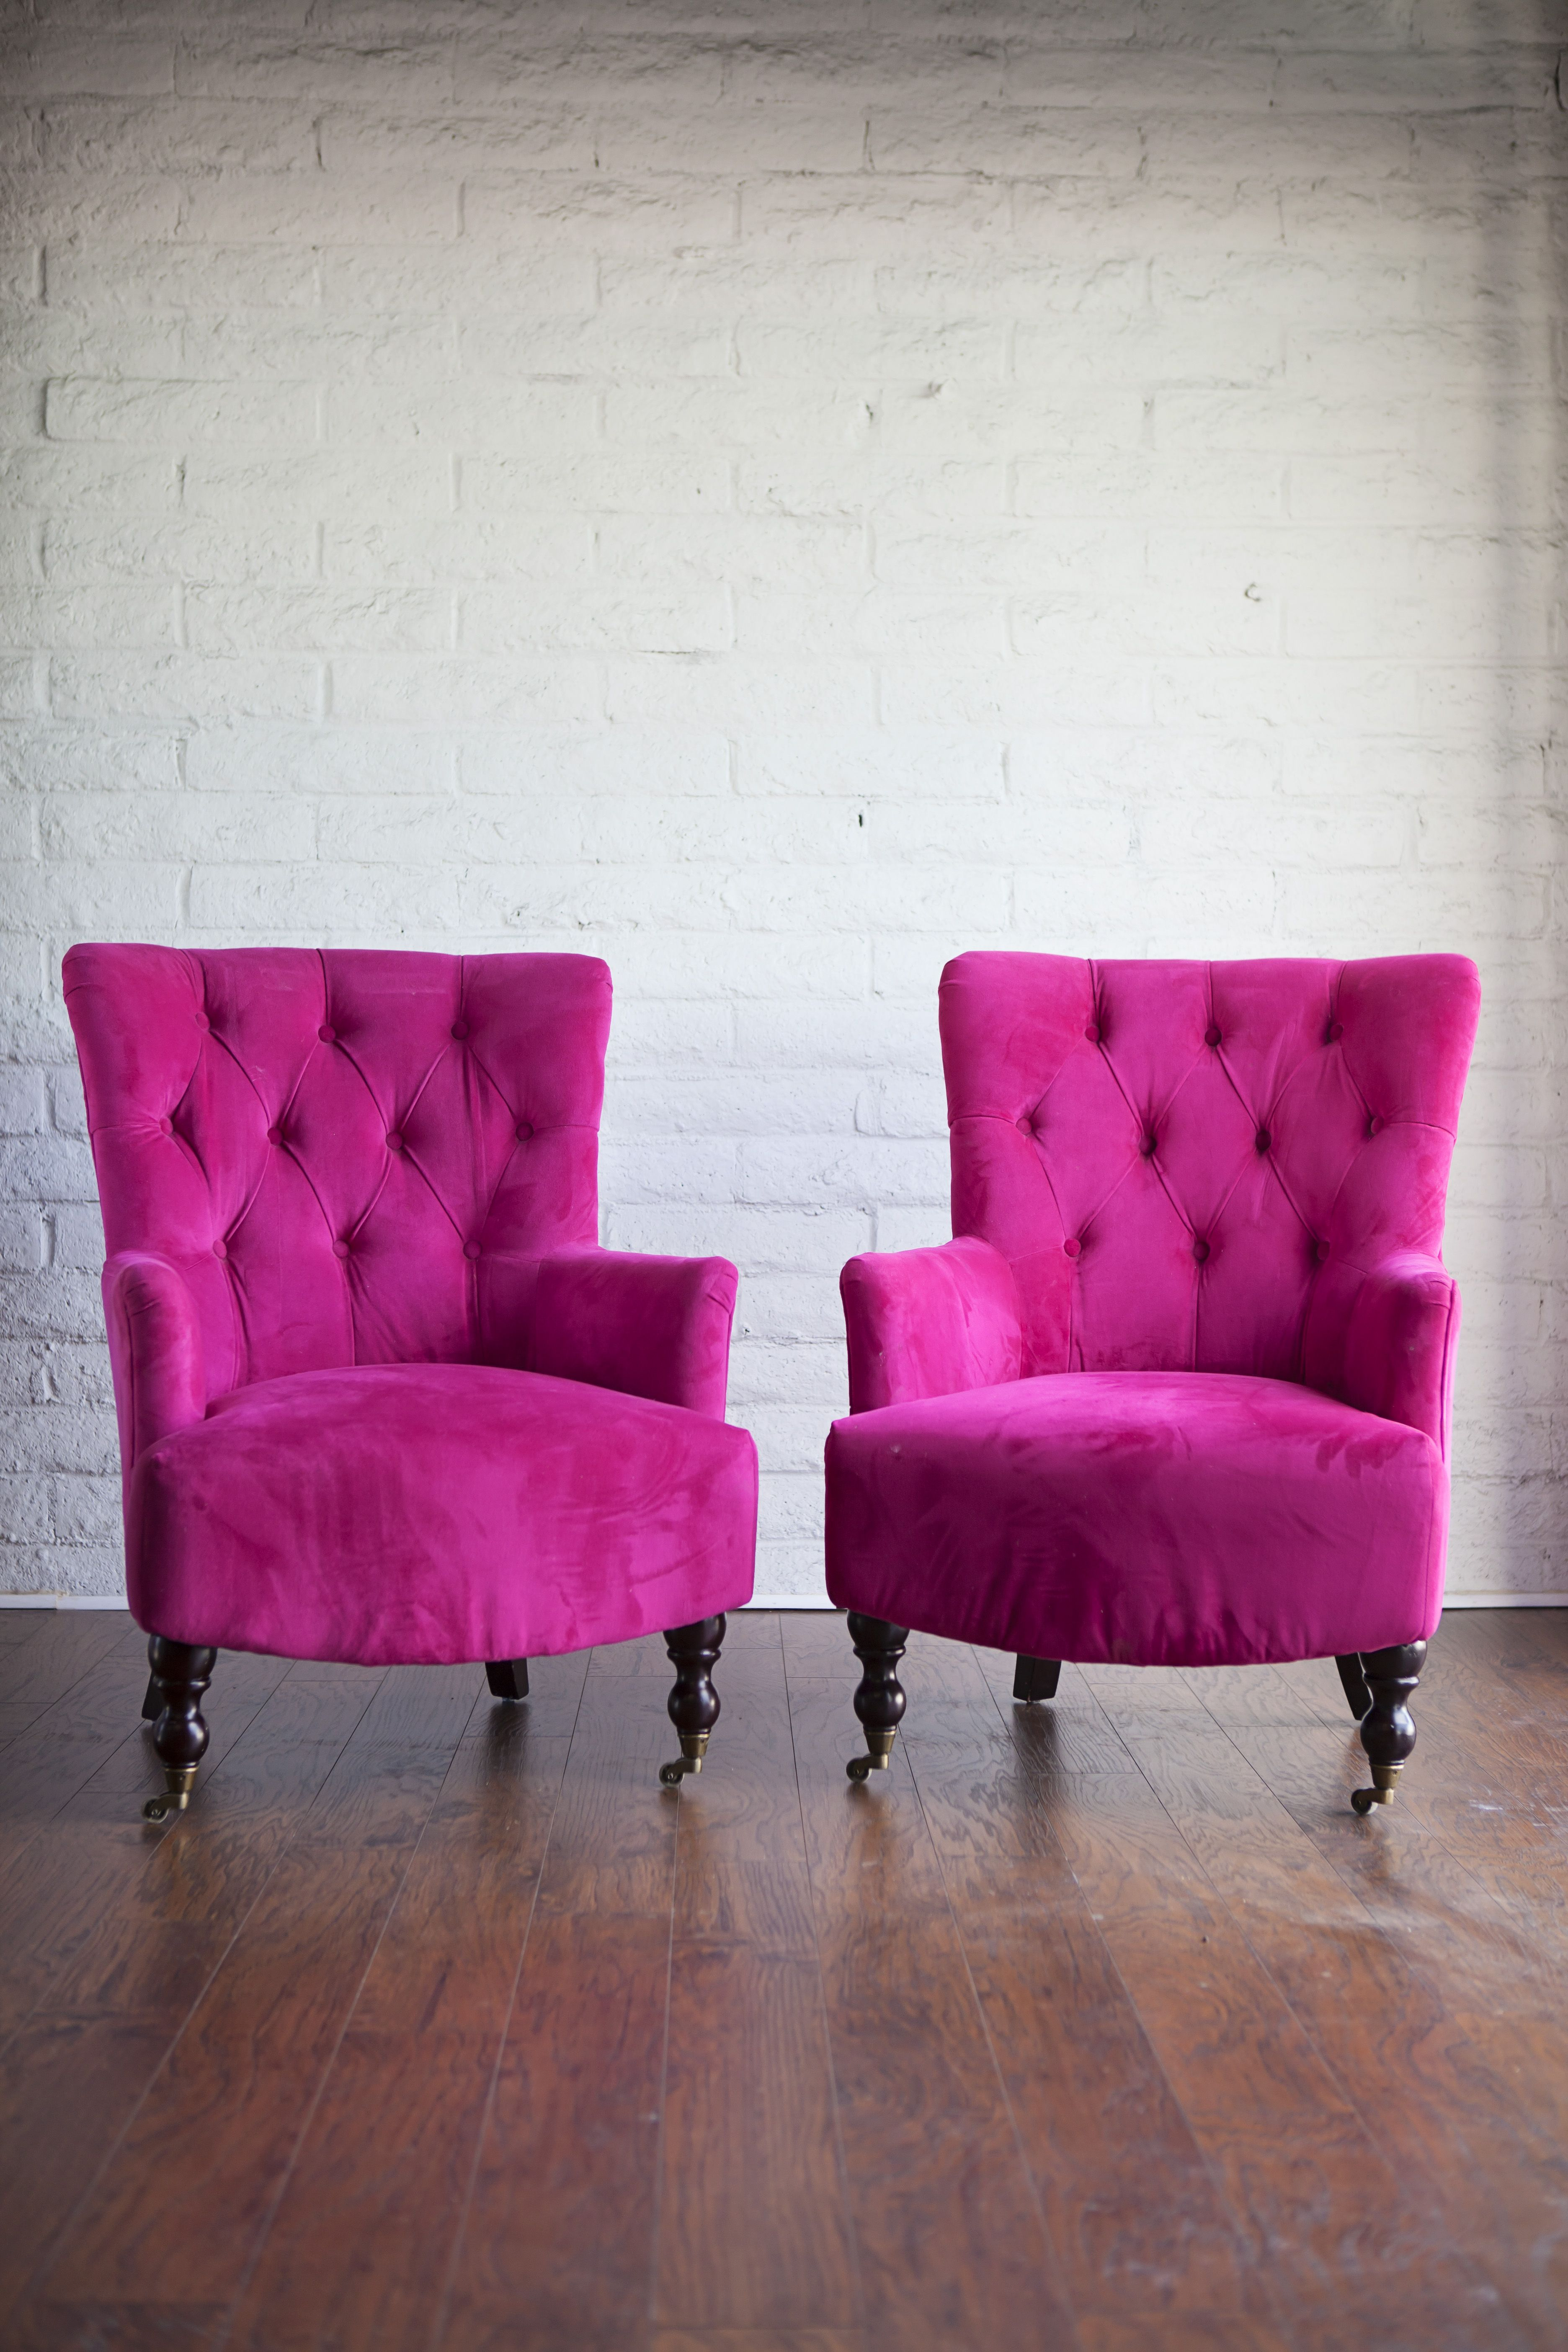 Pair Of Pink Tufted Chairs Great For Photography And Props Www